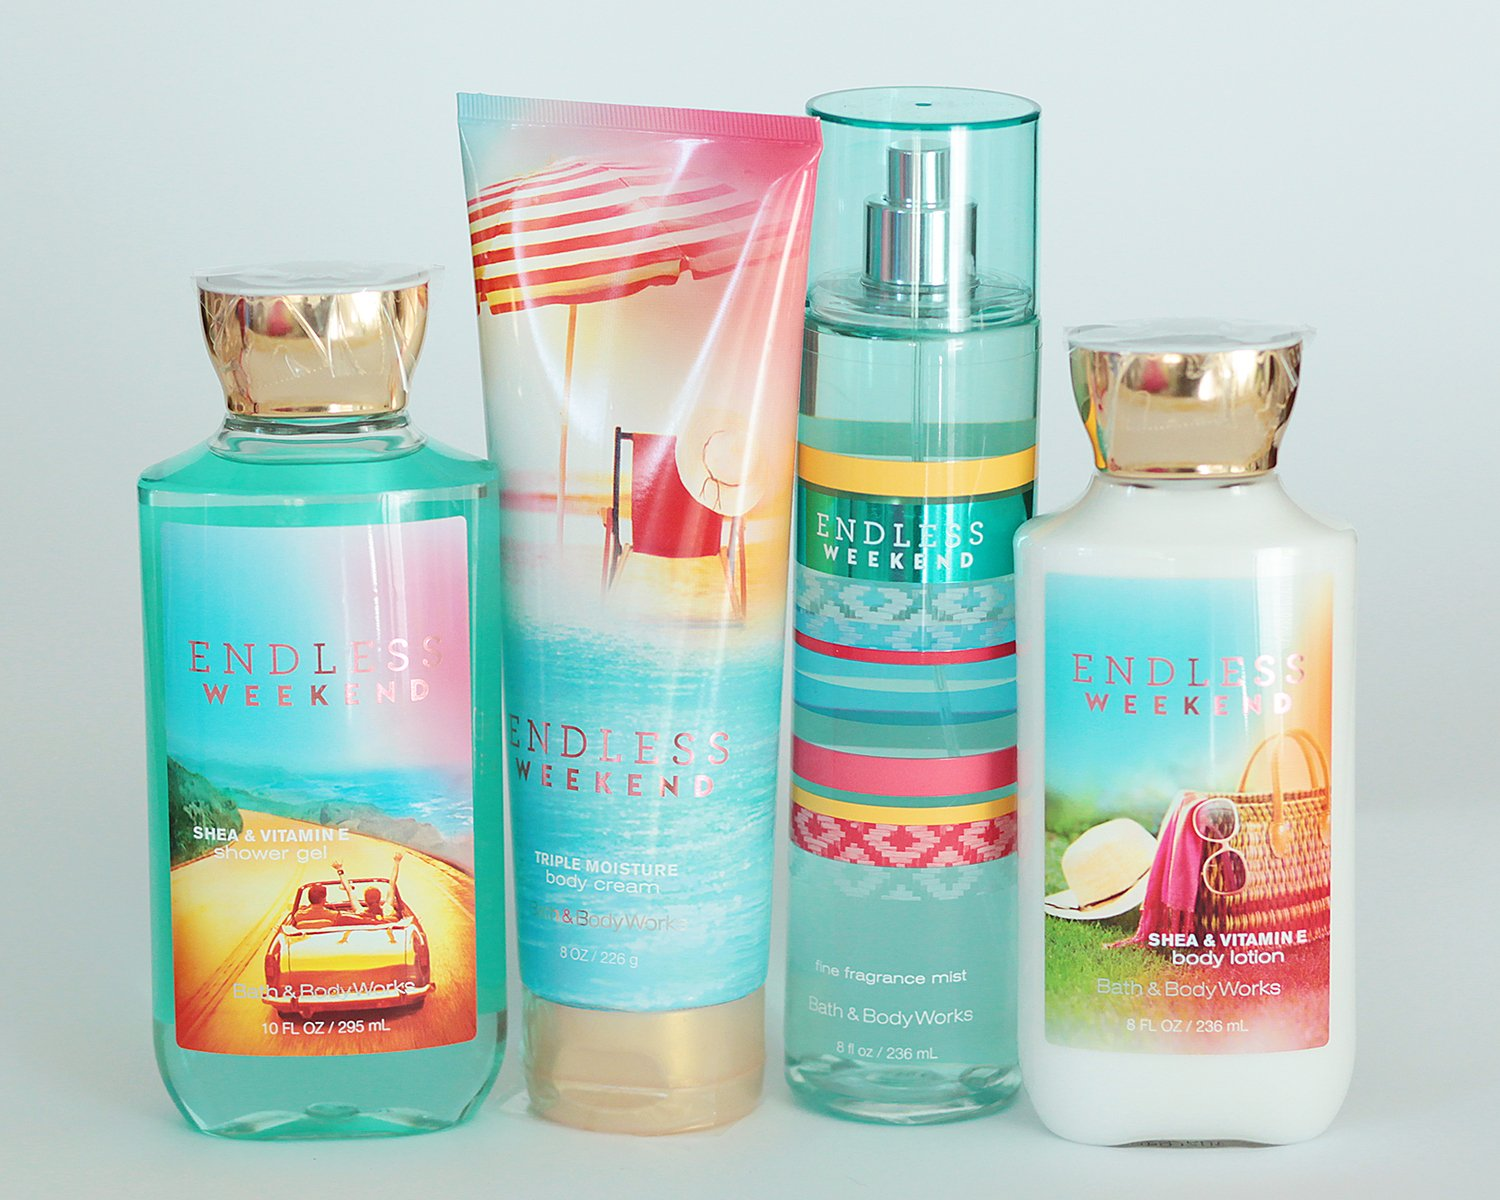 Bath and Body Works Endless Weekend Gift Set of Shower Gel, Body Cream, Body Lotion and Mist : Beauty